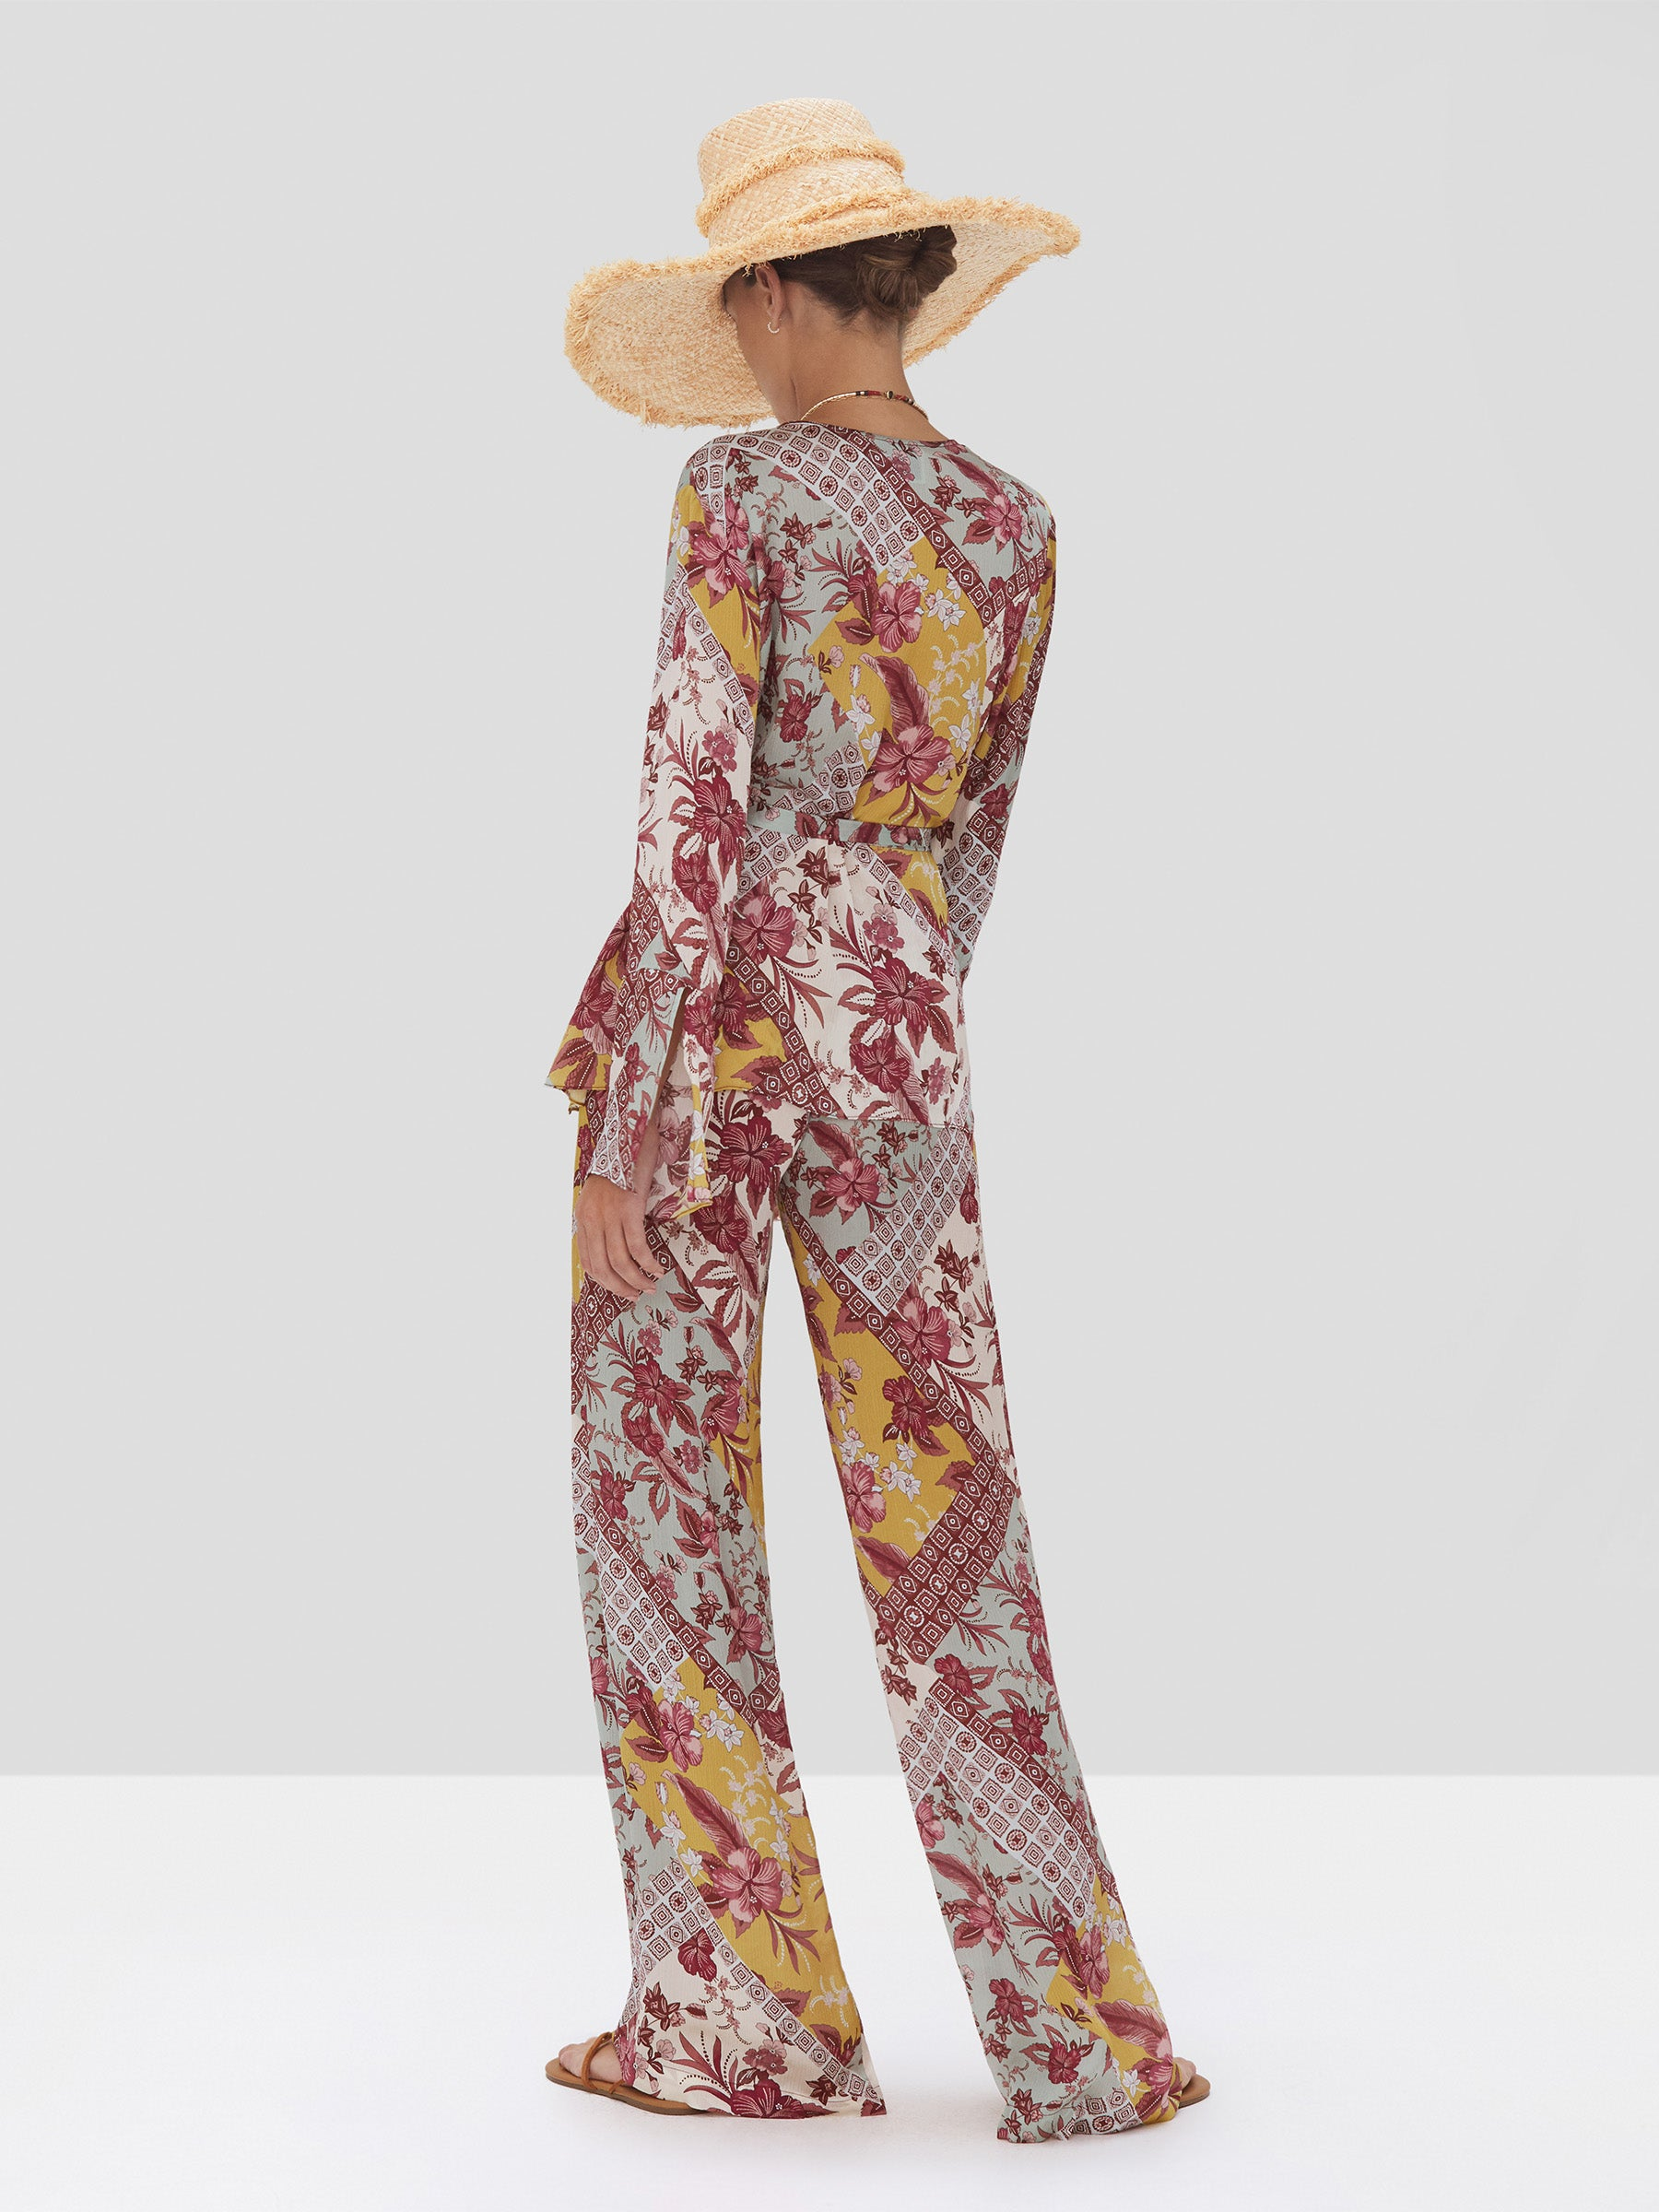 Alexis Kalindi Top and Bozena Pant in Berry Foulard from the Spring Summer 2020 Collection - Rear View